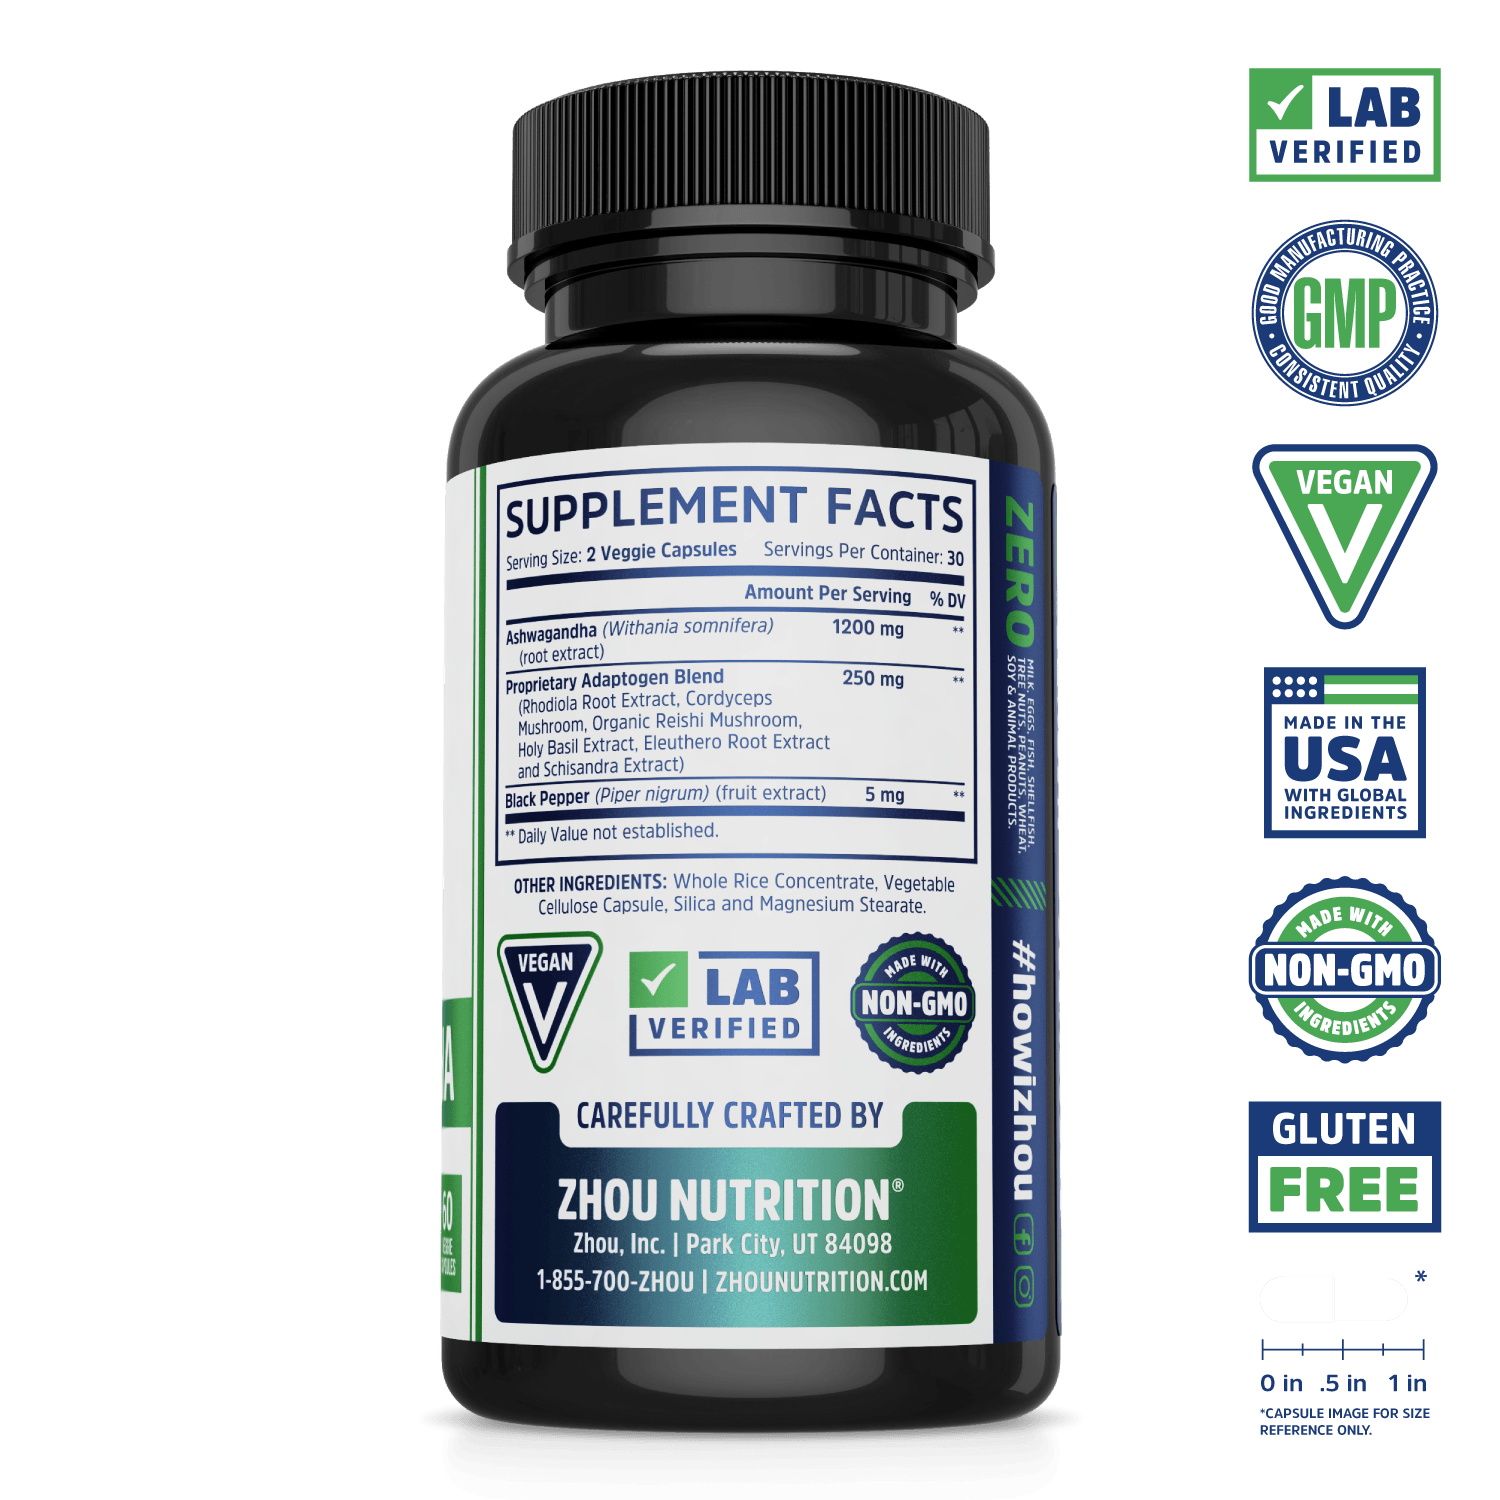 Max Strength Ashwagandha Blend Zhou Nutrition. Bottle side. Lab verified, good manufacturing practices, vegan, made with non-GMO ingredients, made in the USA with global ingredients, gluten free.